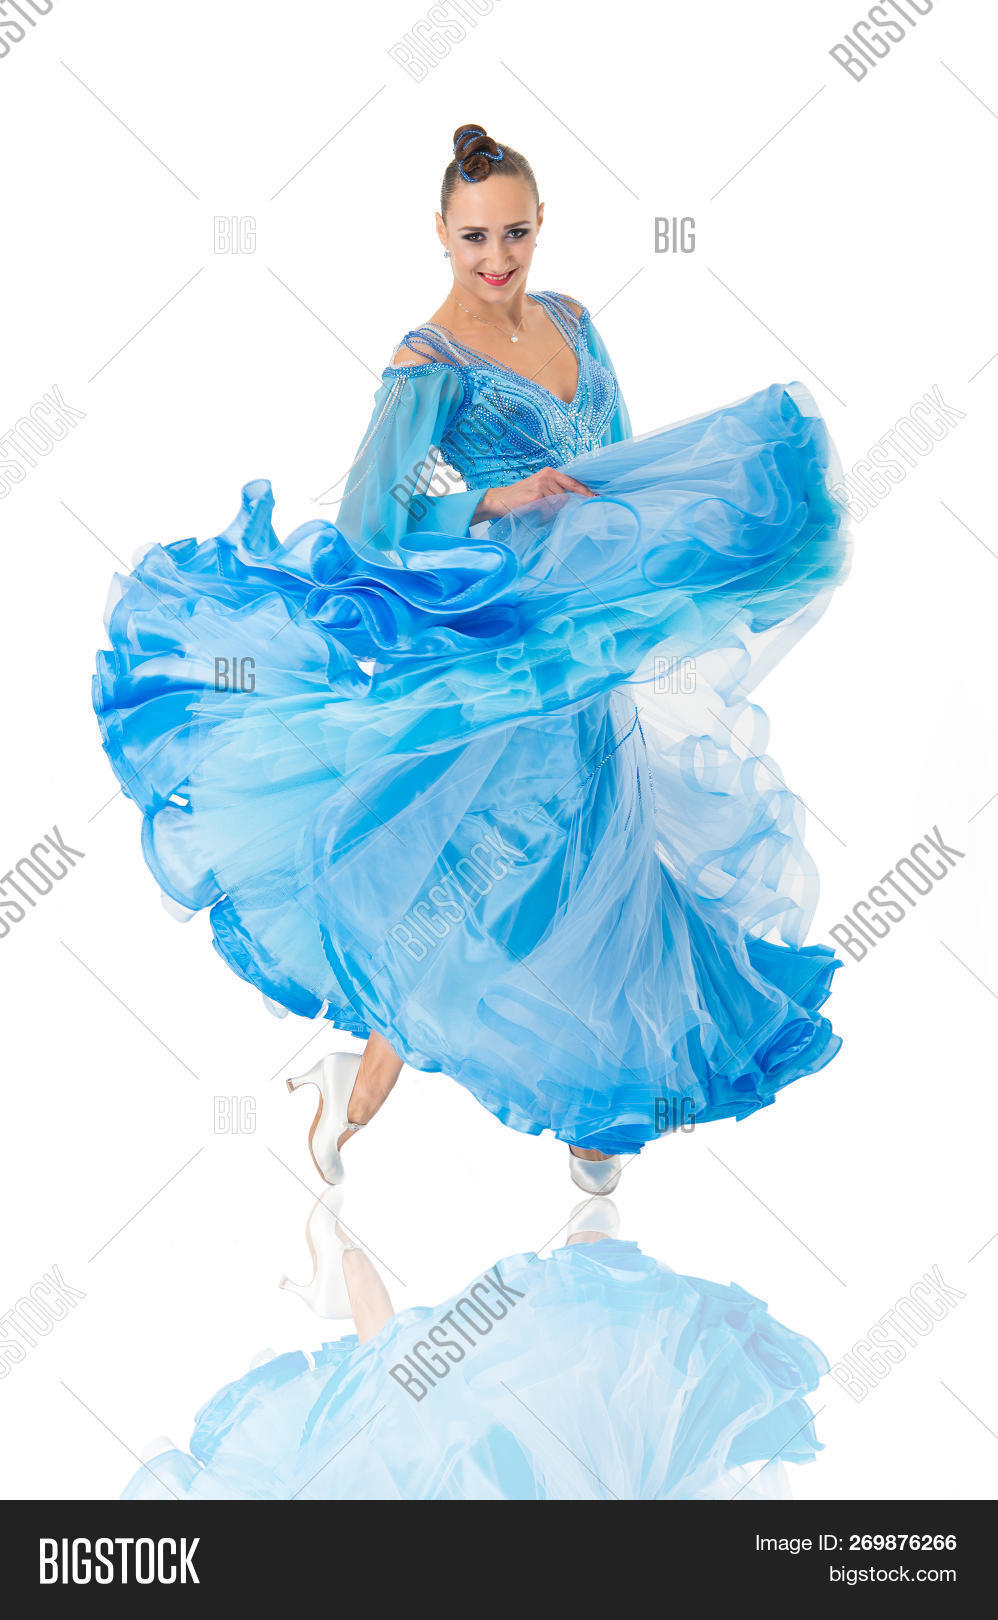 Wonderful Girl On Smiling Face Dressed In Luxury Blue Dress Posing With Posture.  Dancer Of Ballroom